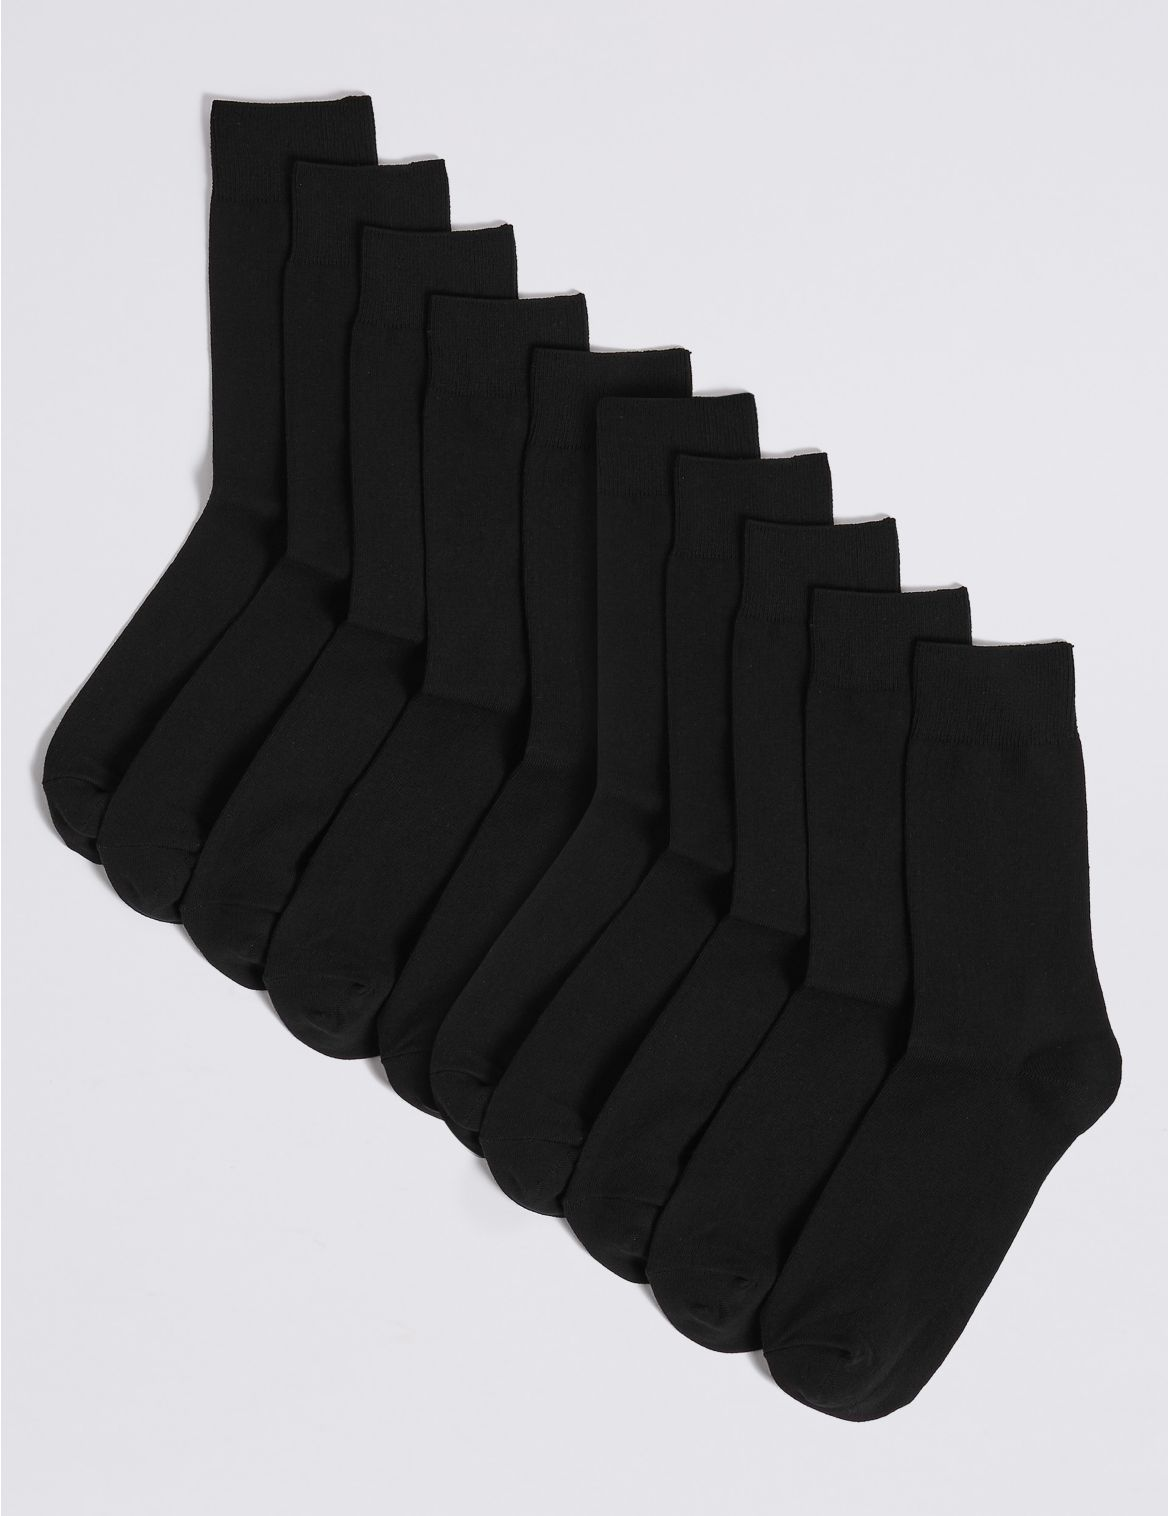 StyleProduct Style: Everyday socks;Added stretch;Reinforced heel & toe for extra durability